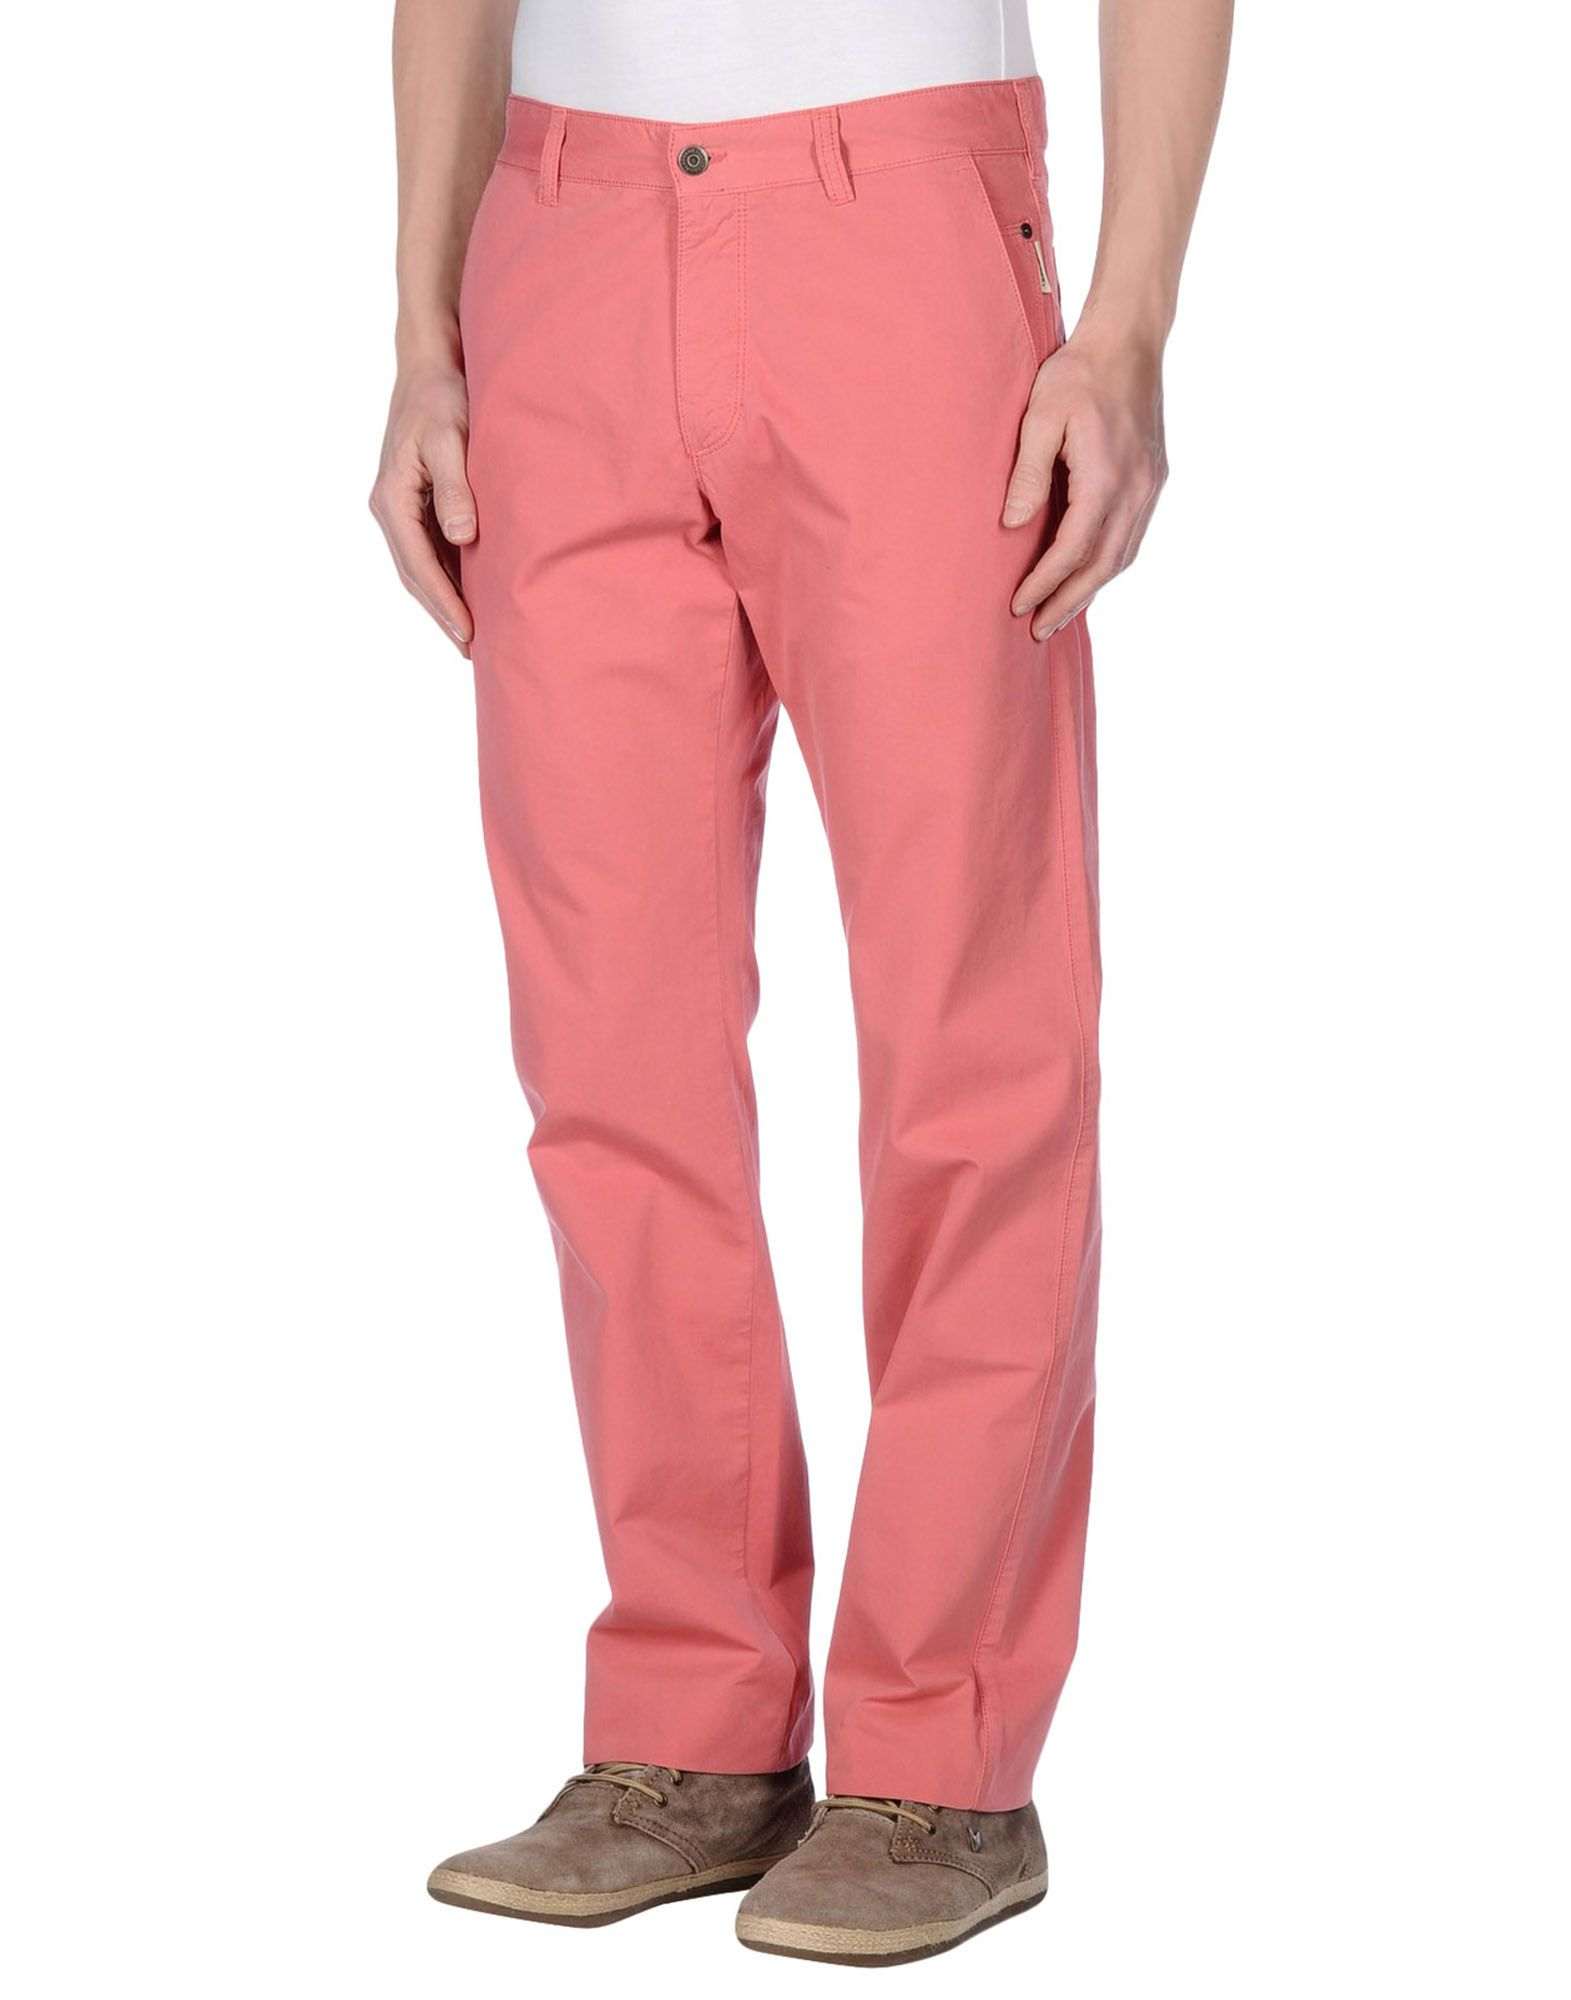 Shop Men's PANTS & Chinos From Top Brands Online @ ZALORA Malaysia & Brunei. FREE Delivery Available Cash On Delivery 30 Days Free Return.